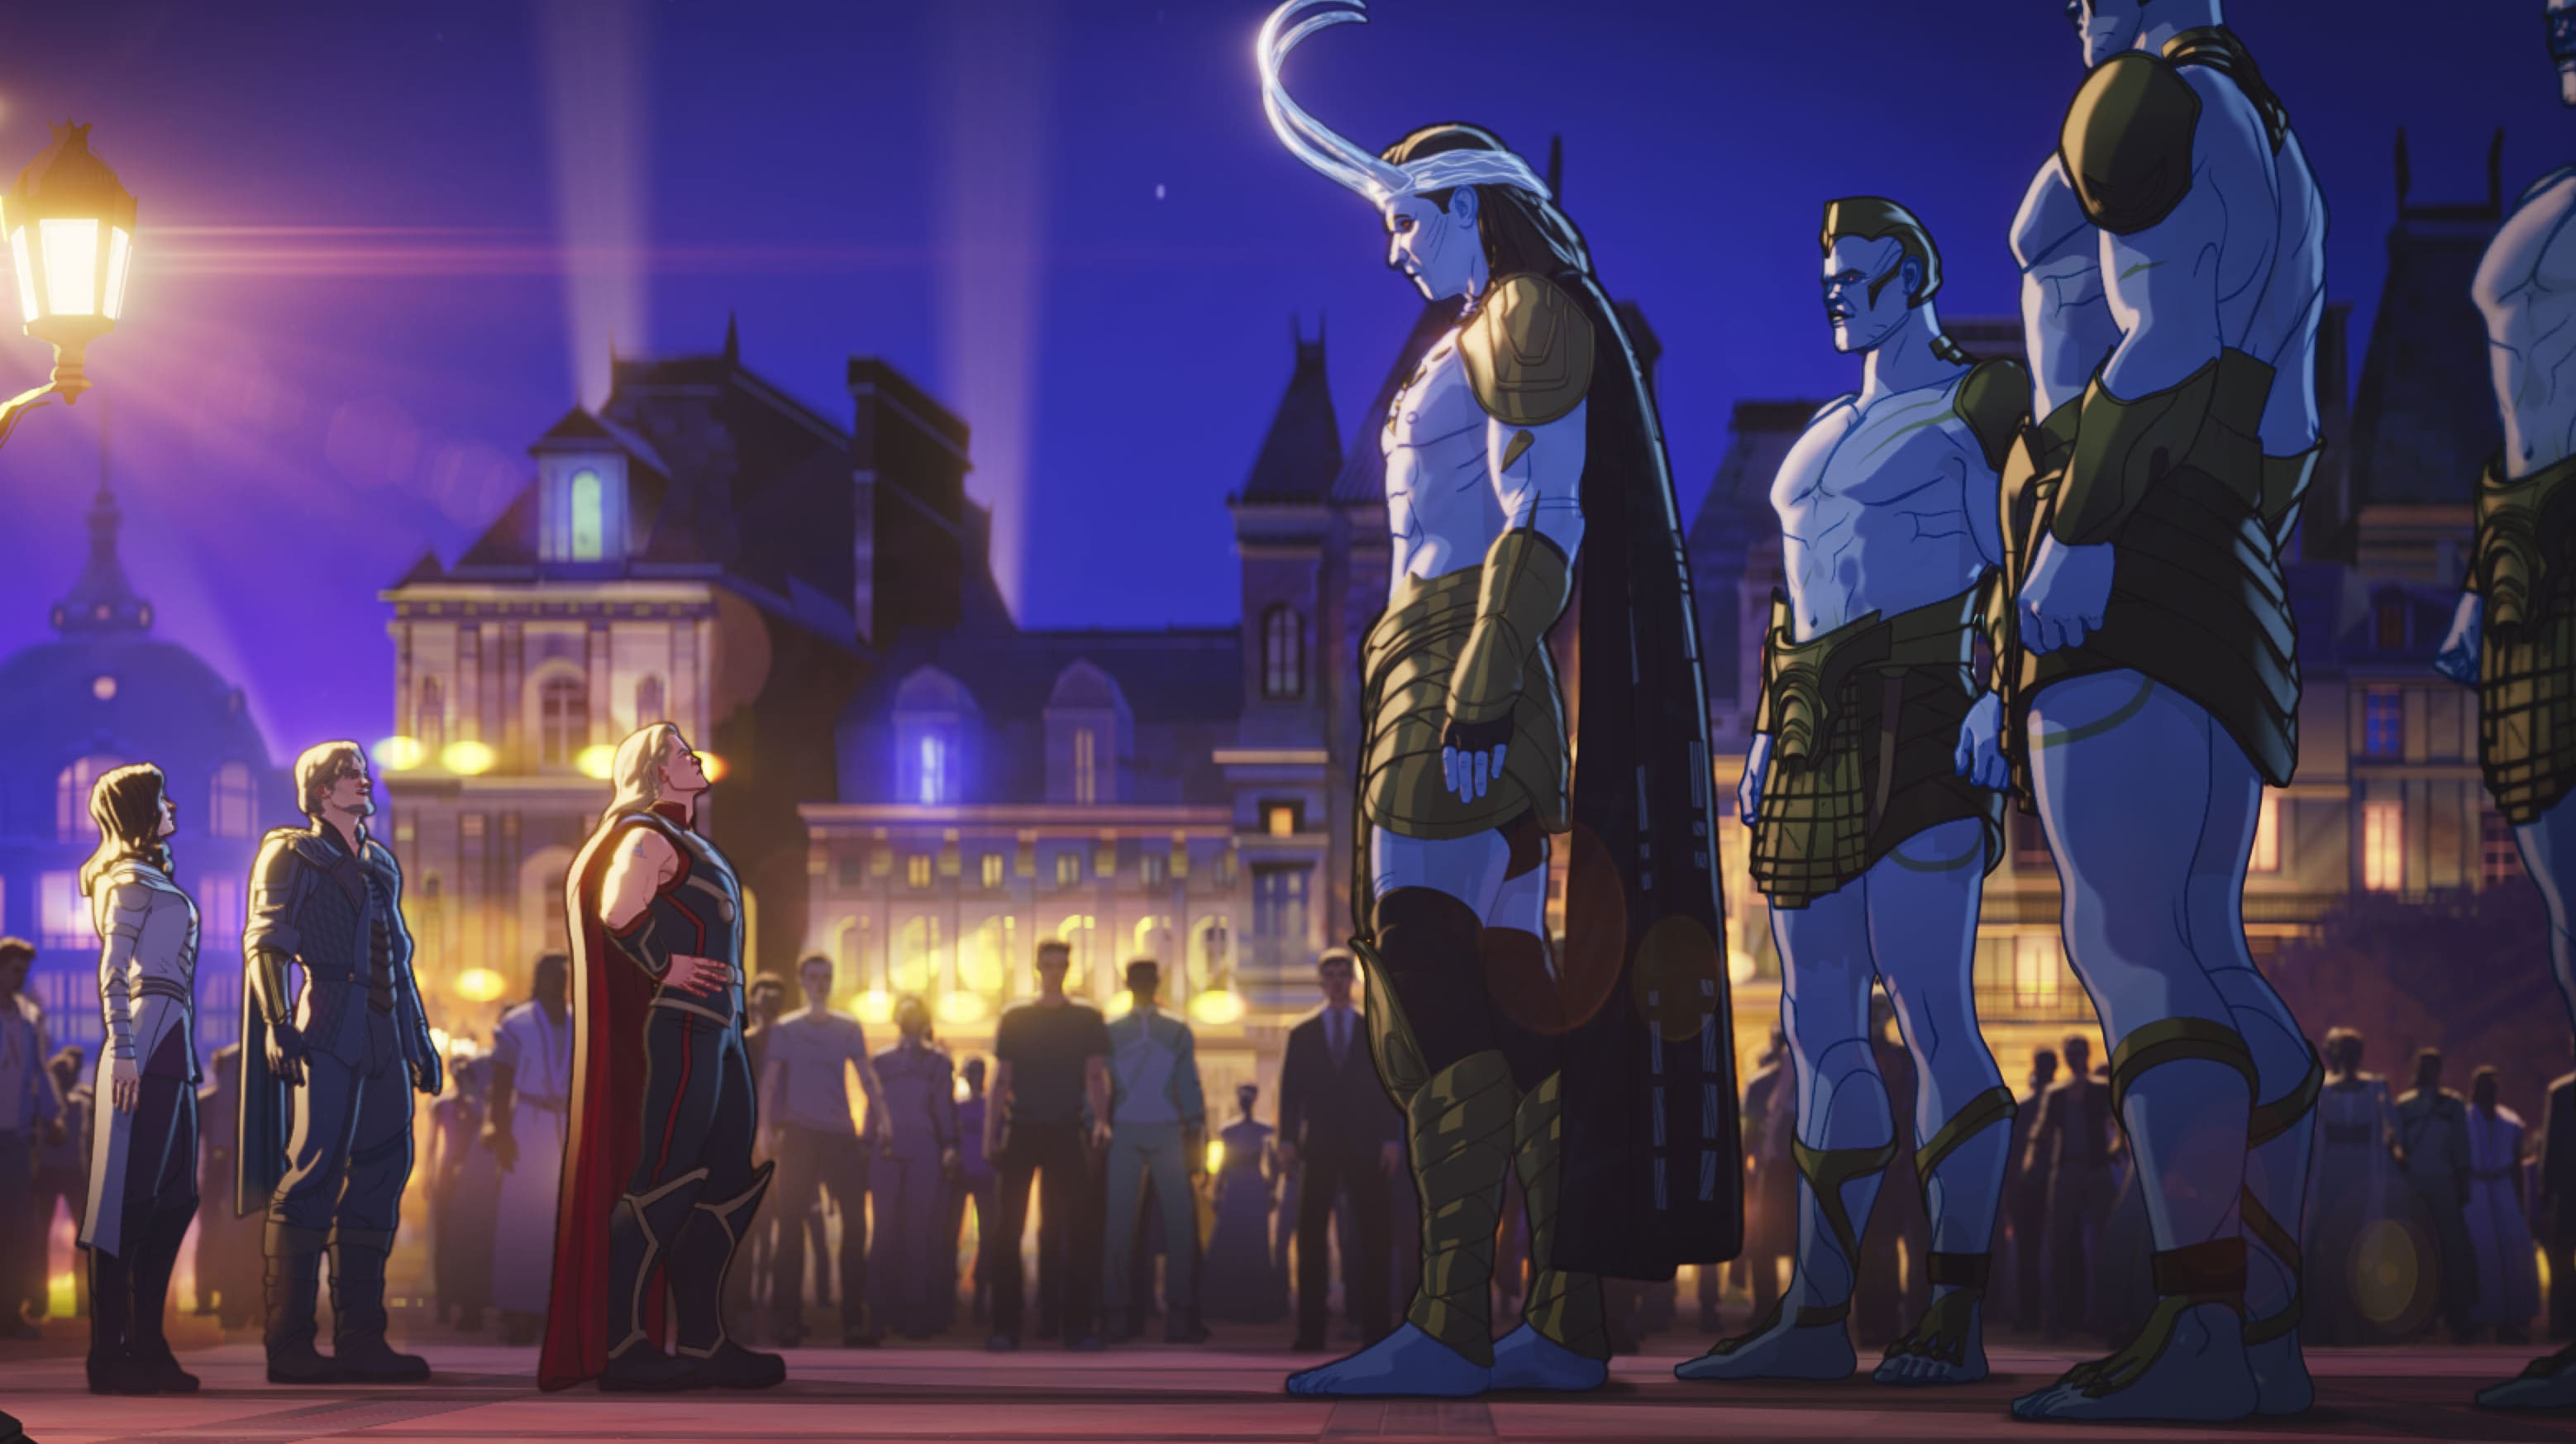 Lady Sif, Fandral, Party Thor, and Frost Giant Loki in Marvel Studios' WHAT IF…? exclusively on Disney+. ©Marvel Studios 2021. All Rights Reserved.